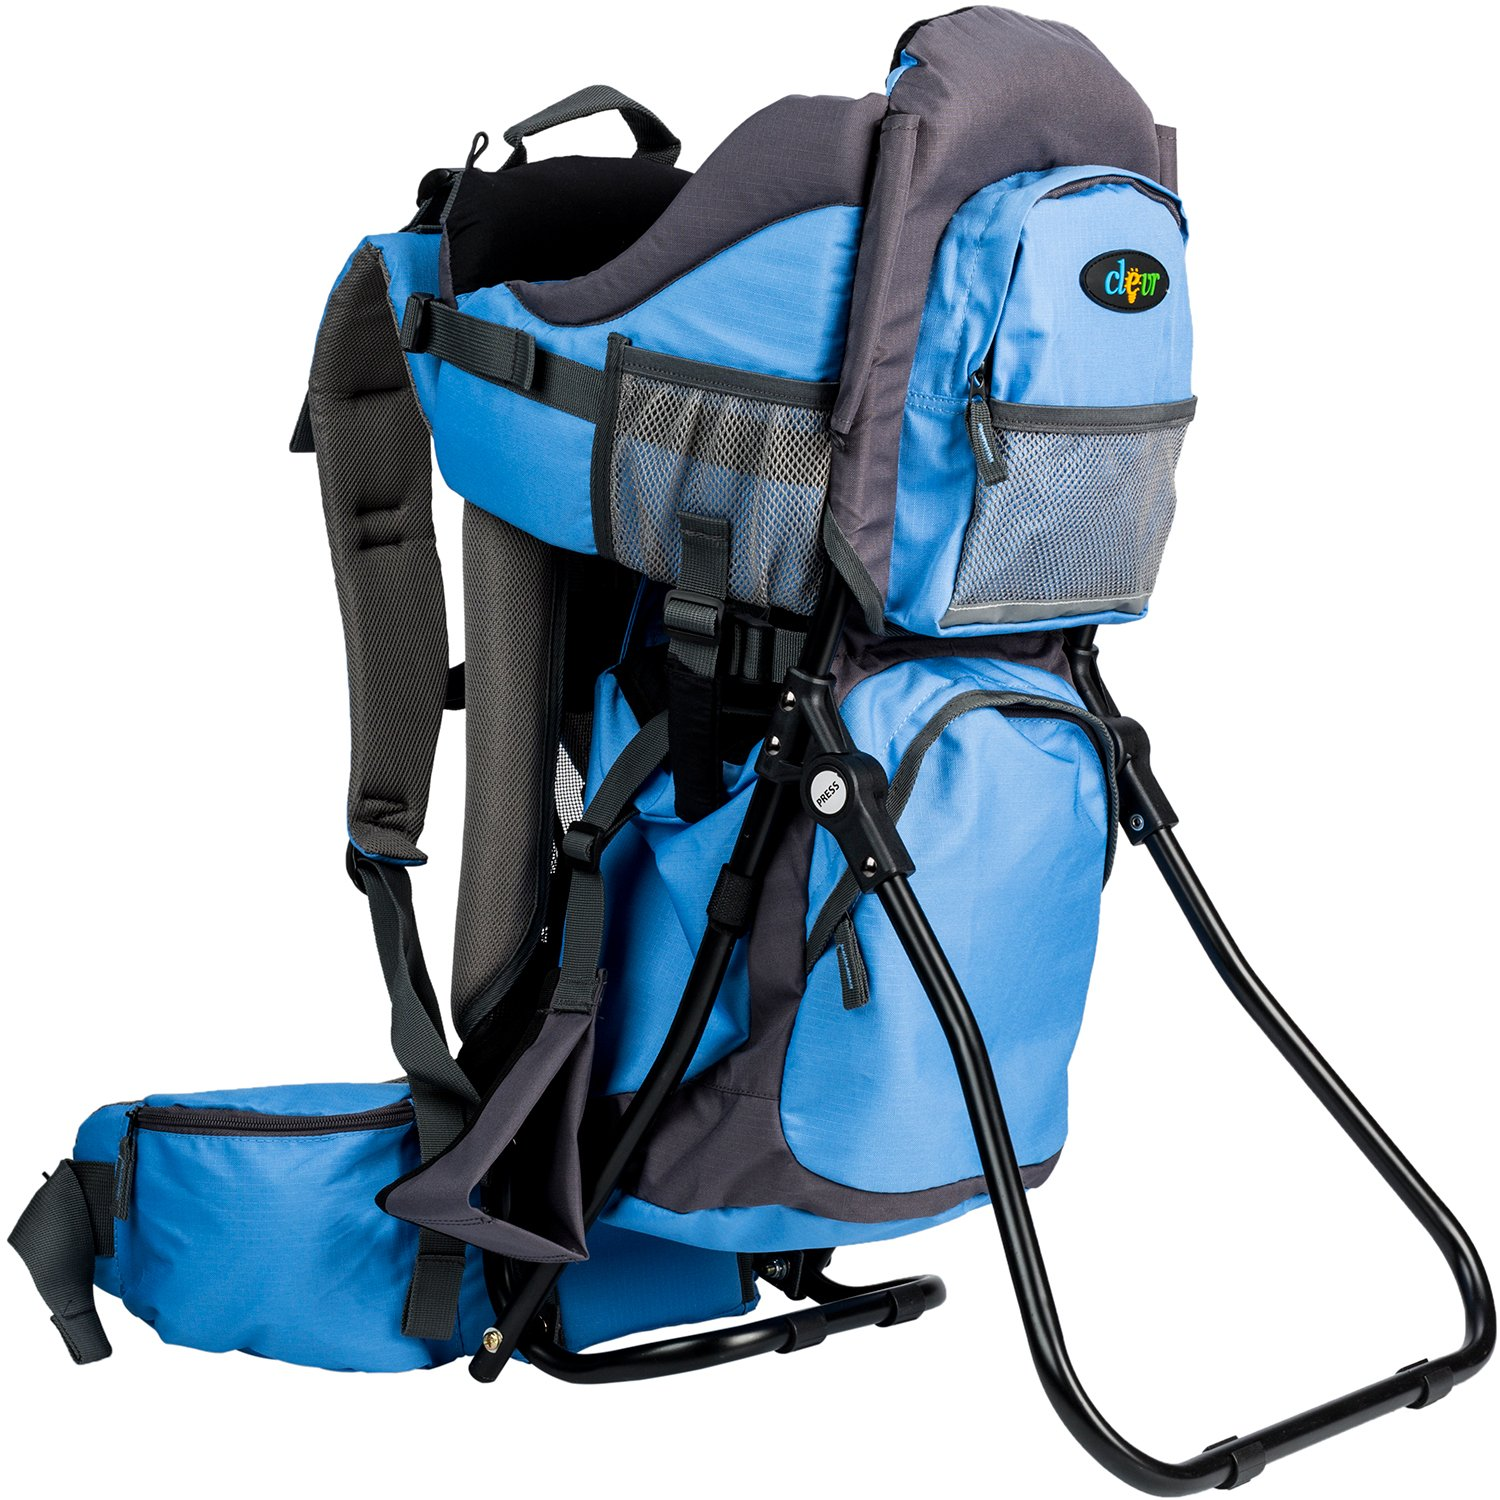 Clevr Canyonero Camping Backpack Warranty